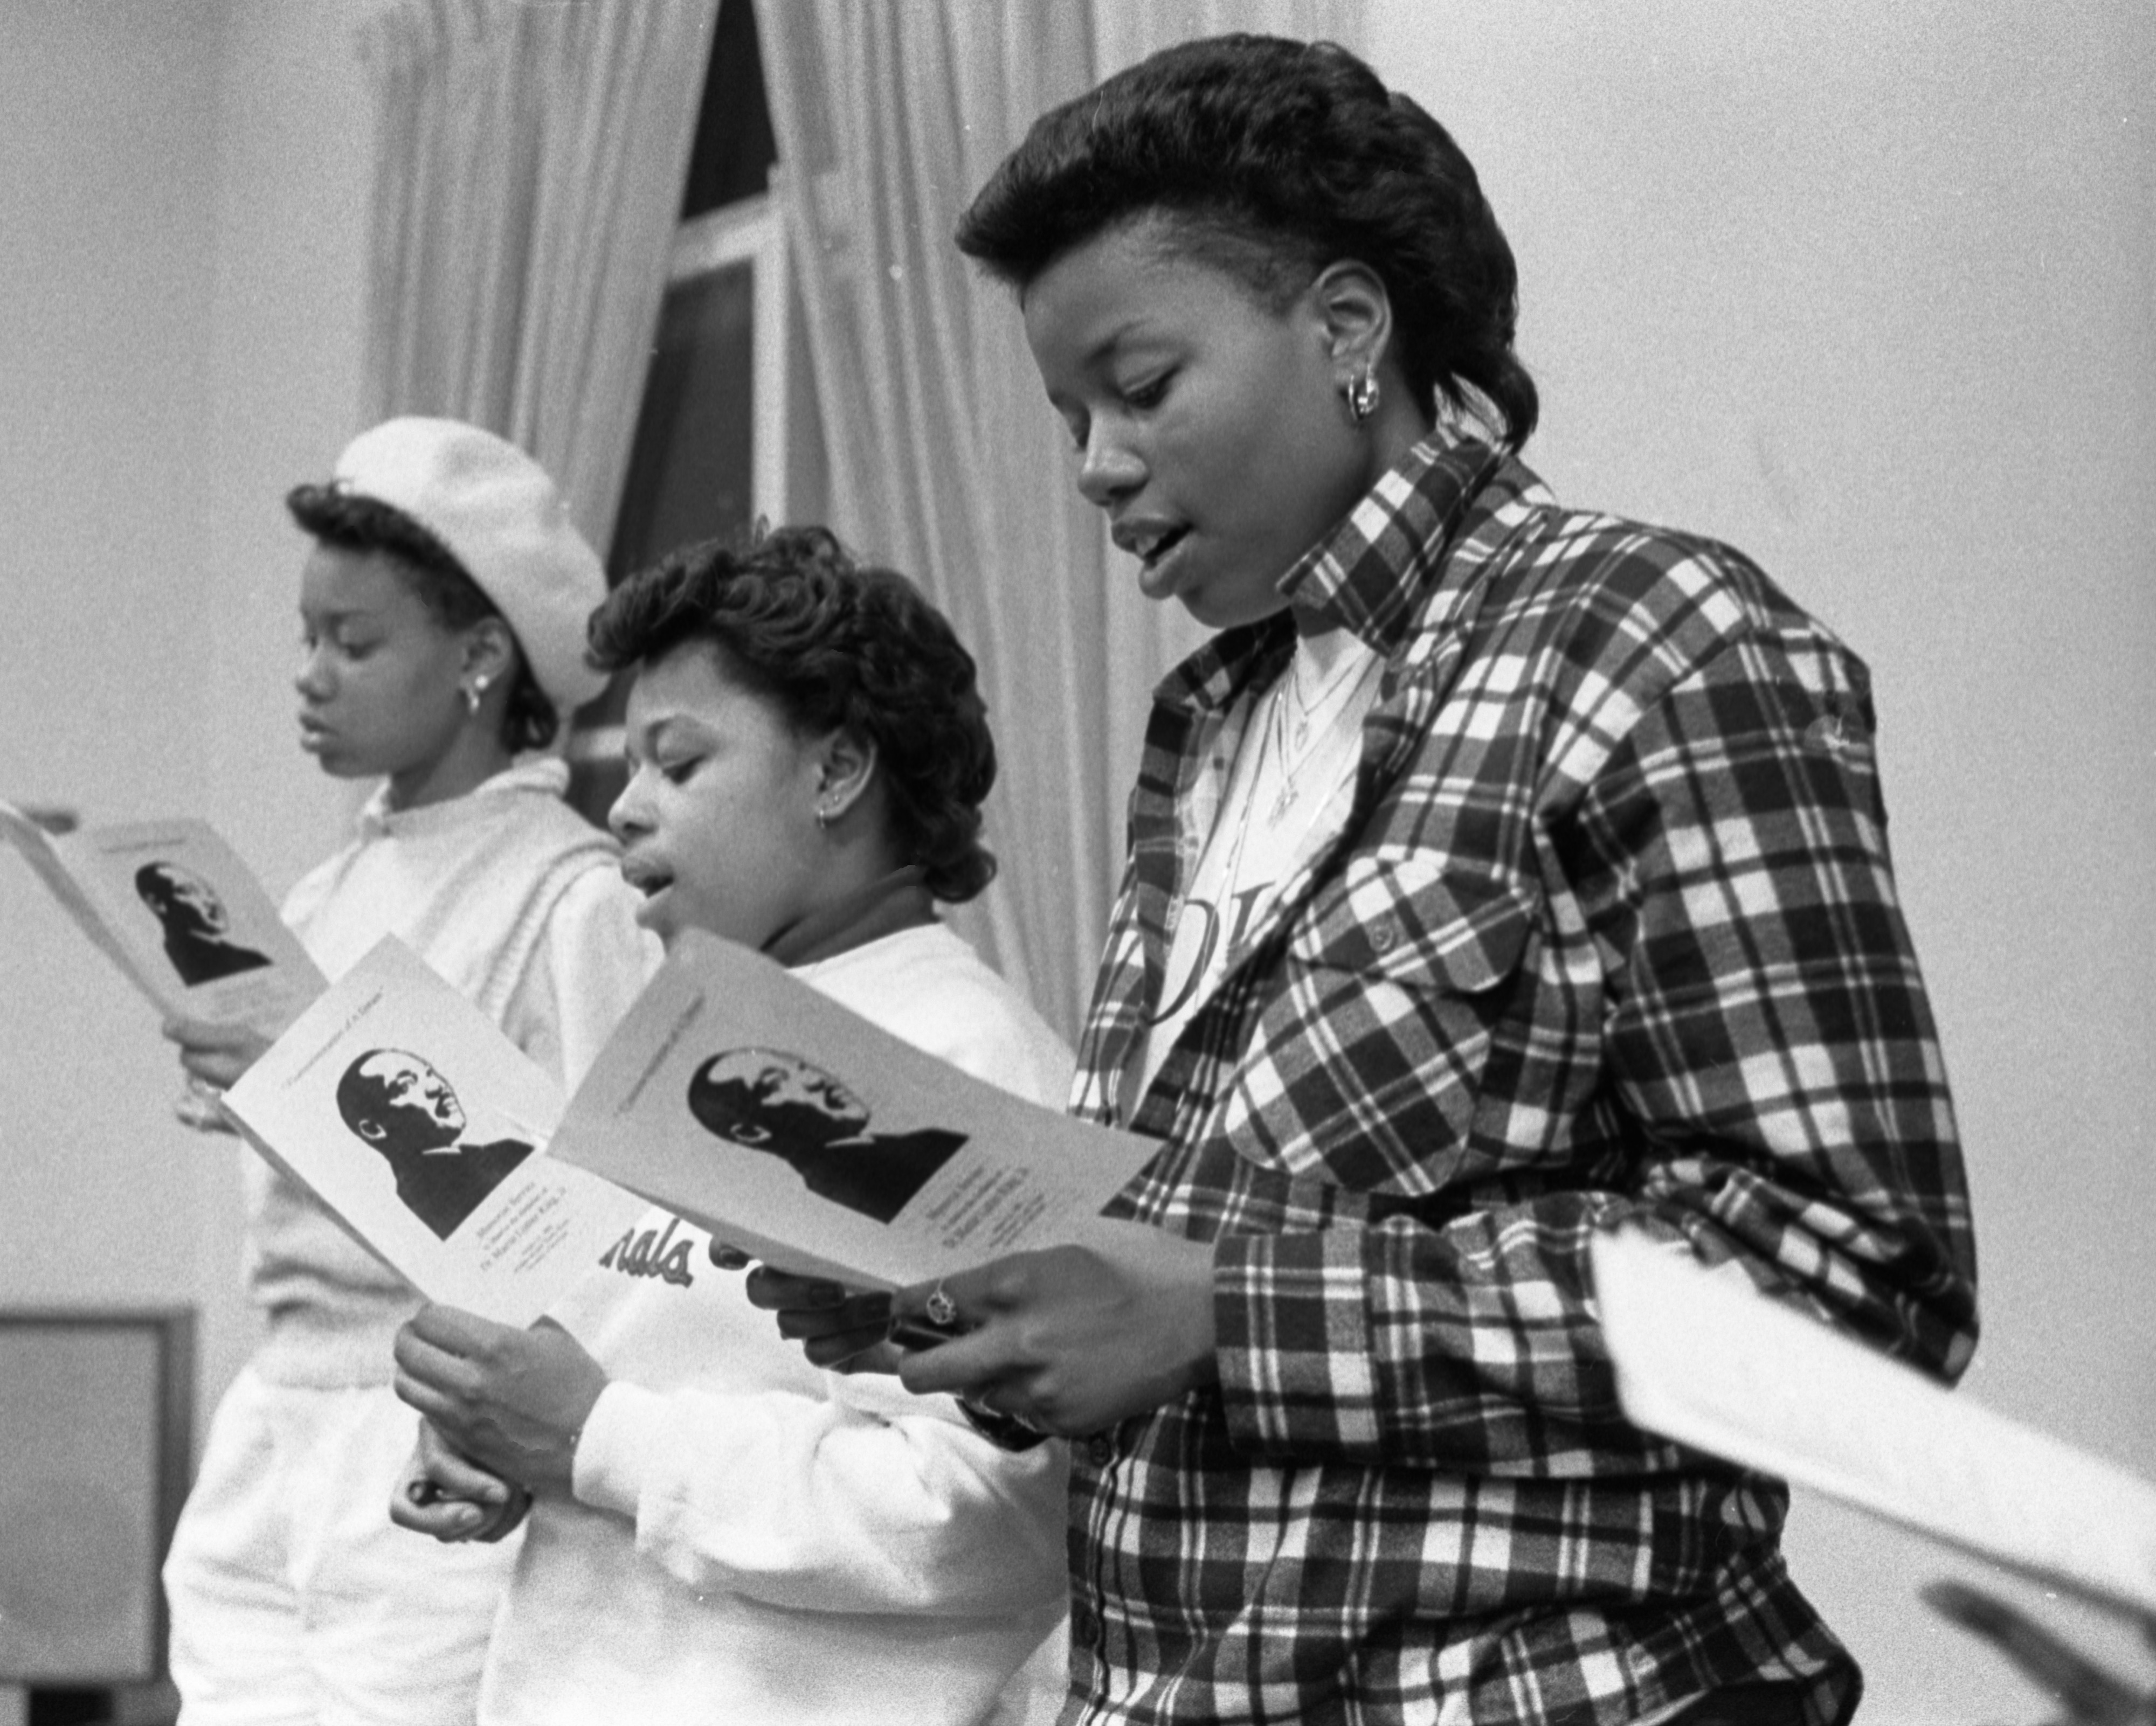 Singers At The Martin Luther King Jr Memoriam At Trotter House, January 18, 1986 image